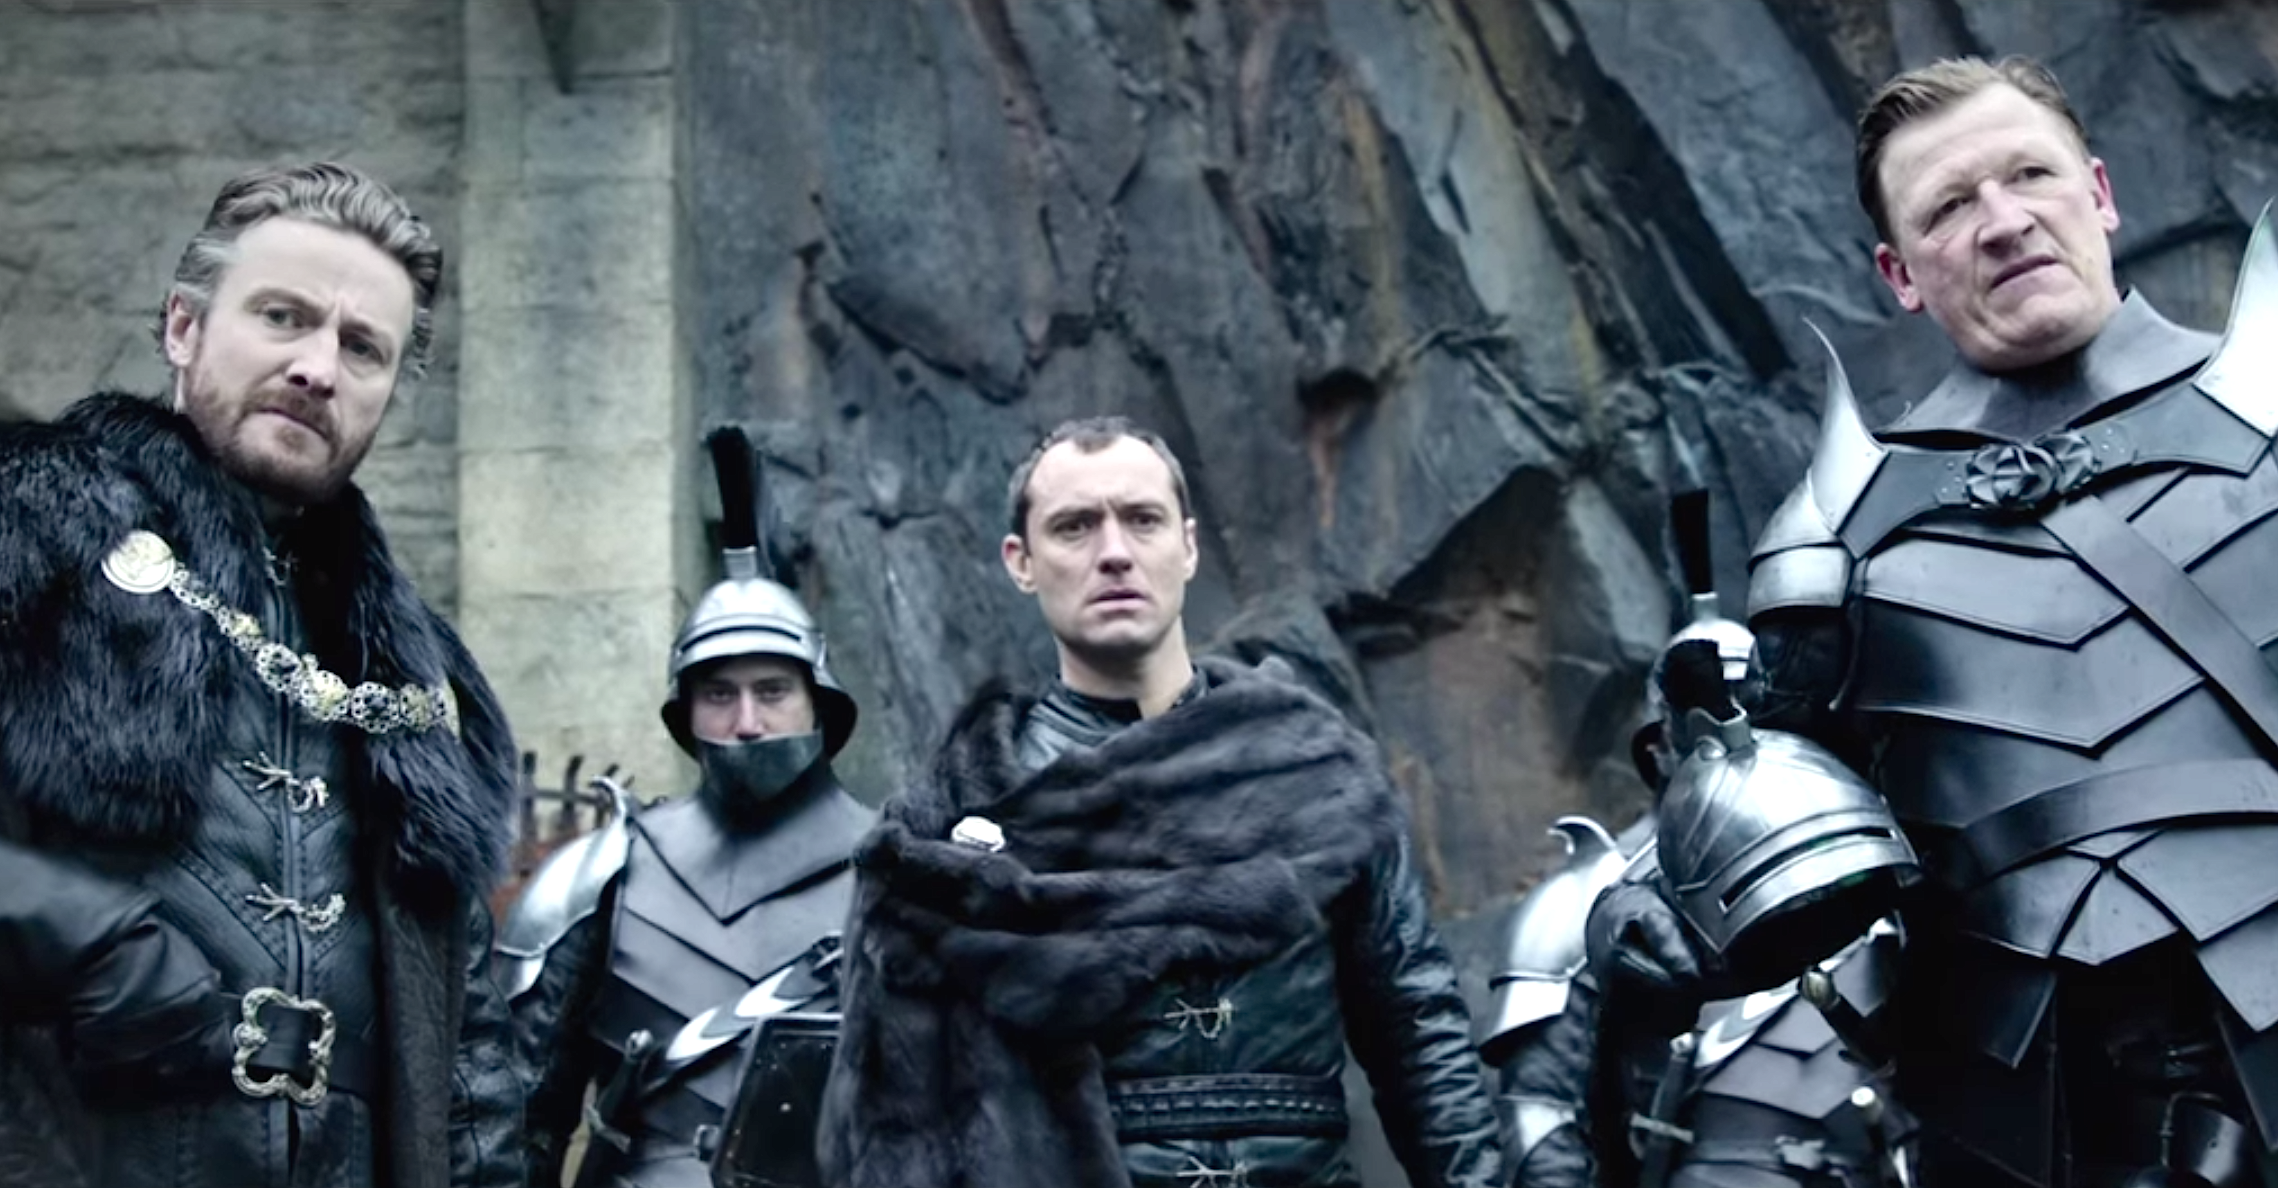 King Arthur - Legend Of The Sword (2017), Jude Law